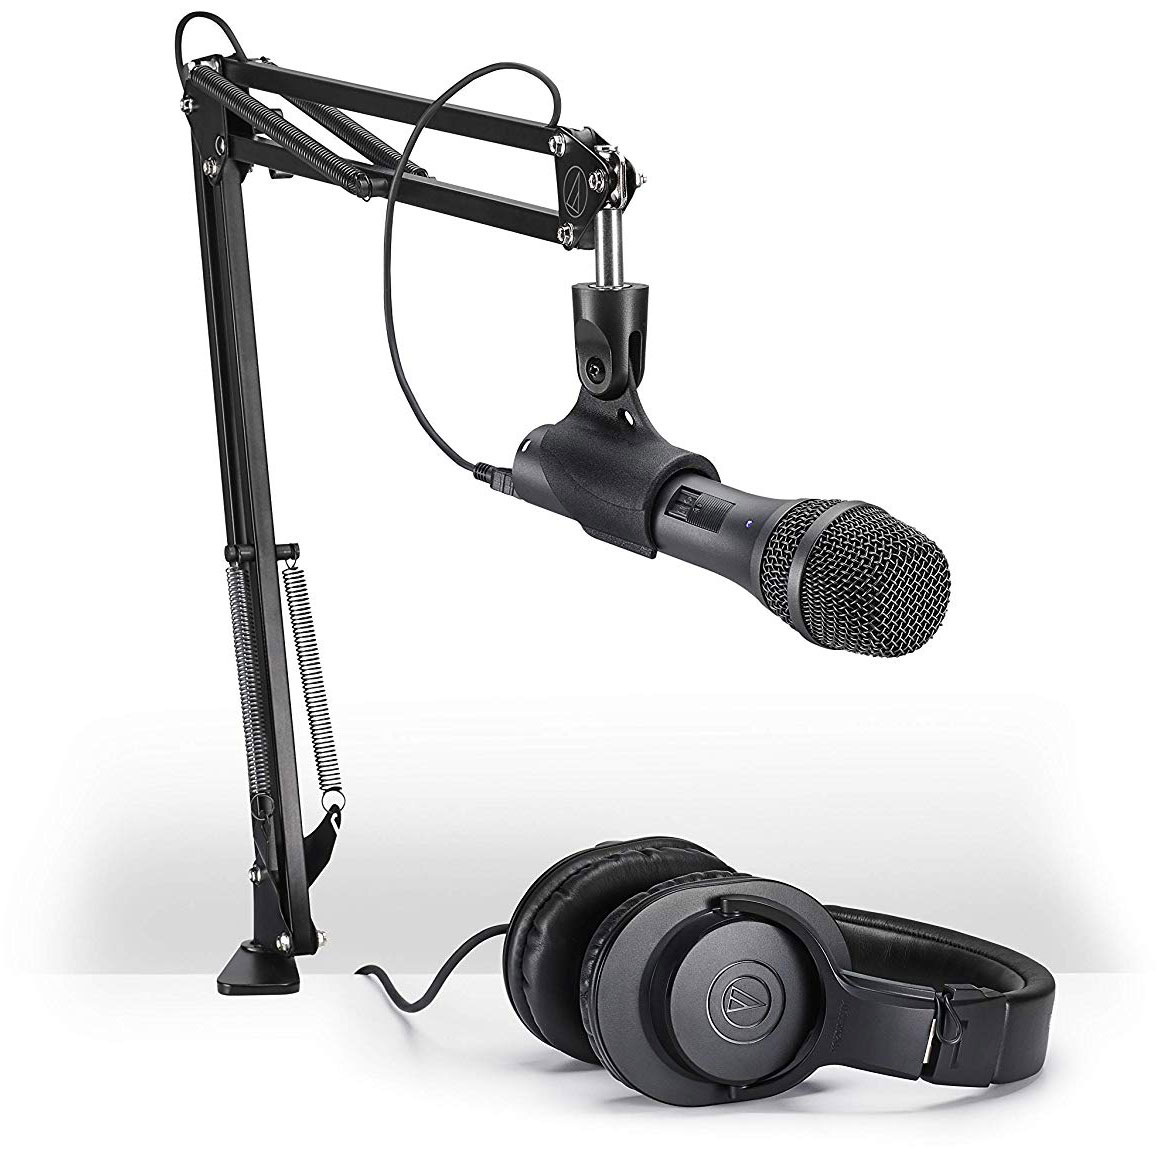 Example of a good USB microphone setup.    Click HERE for Marcus' podcasting equipment recommendations.